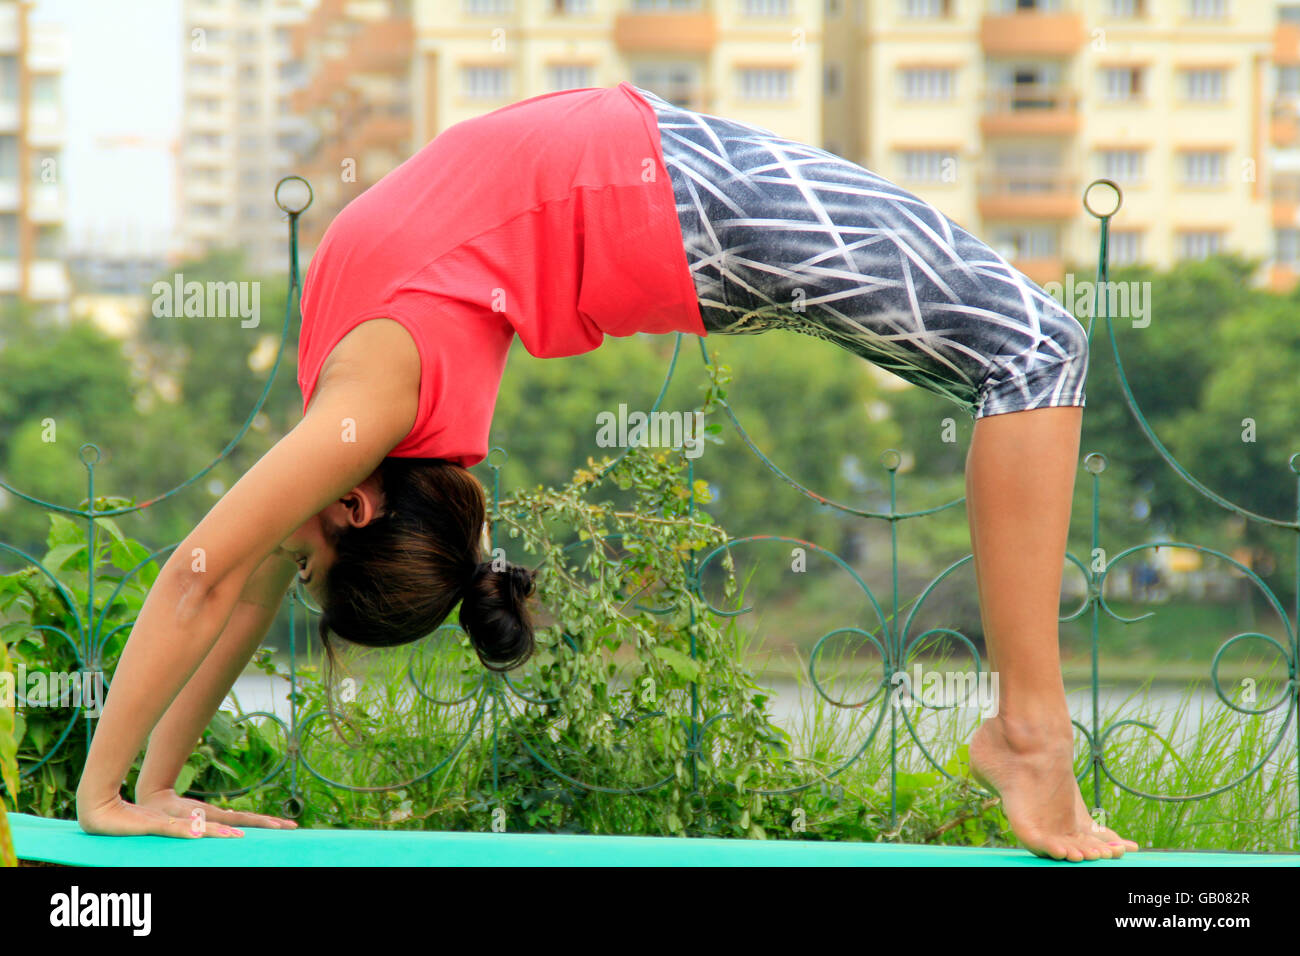 Young Indian Woman Performing Chakrasana Or The Wheel Pose In Yoga Stock Photo Alamy